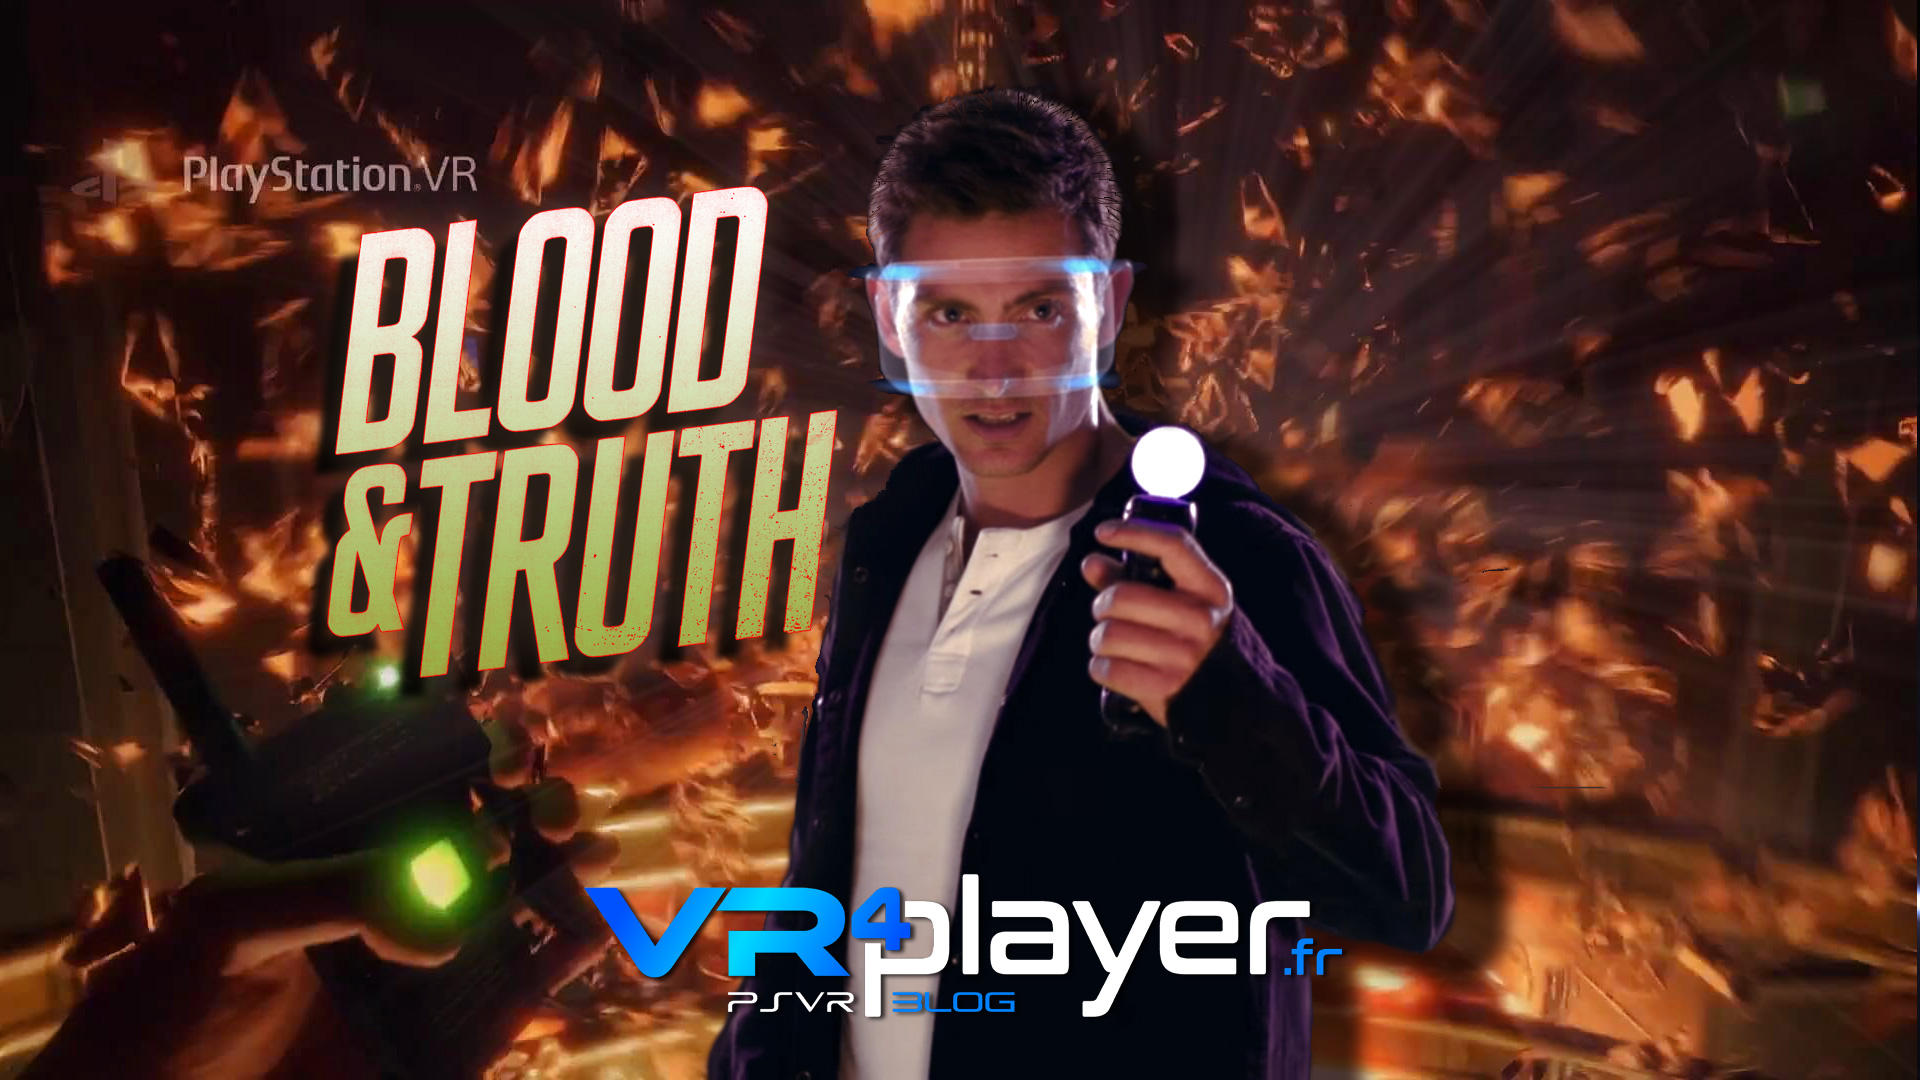 Blood and Truth, toute la vérité sur PSVR - VR4player.fr